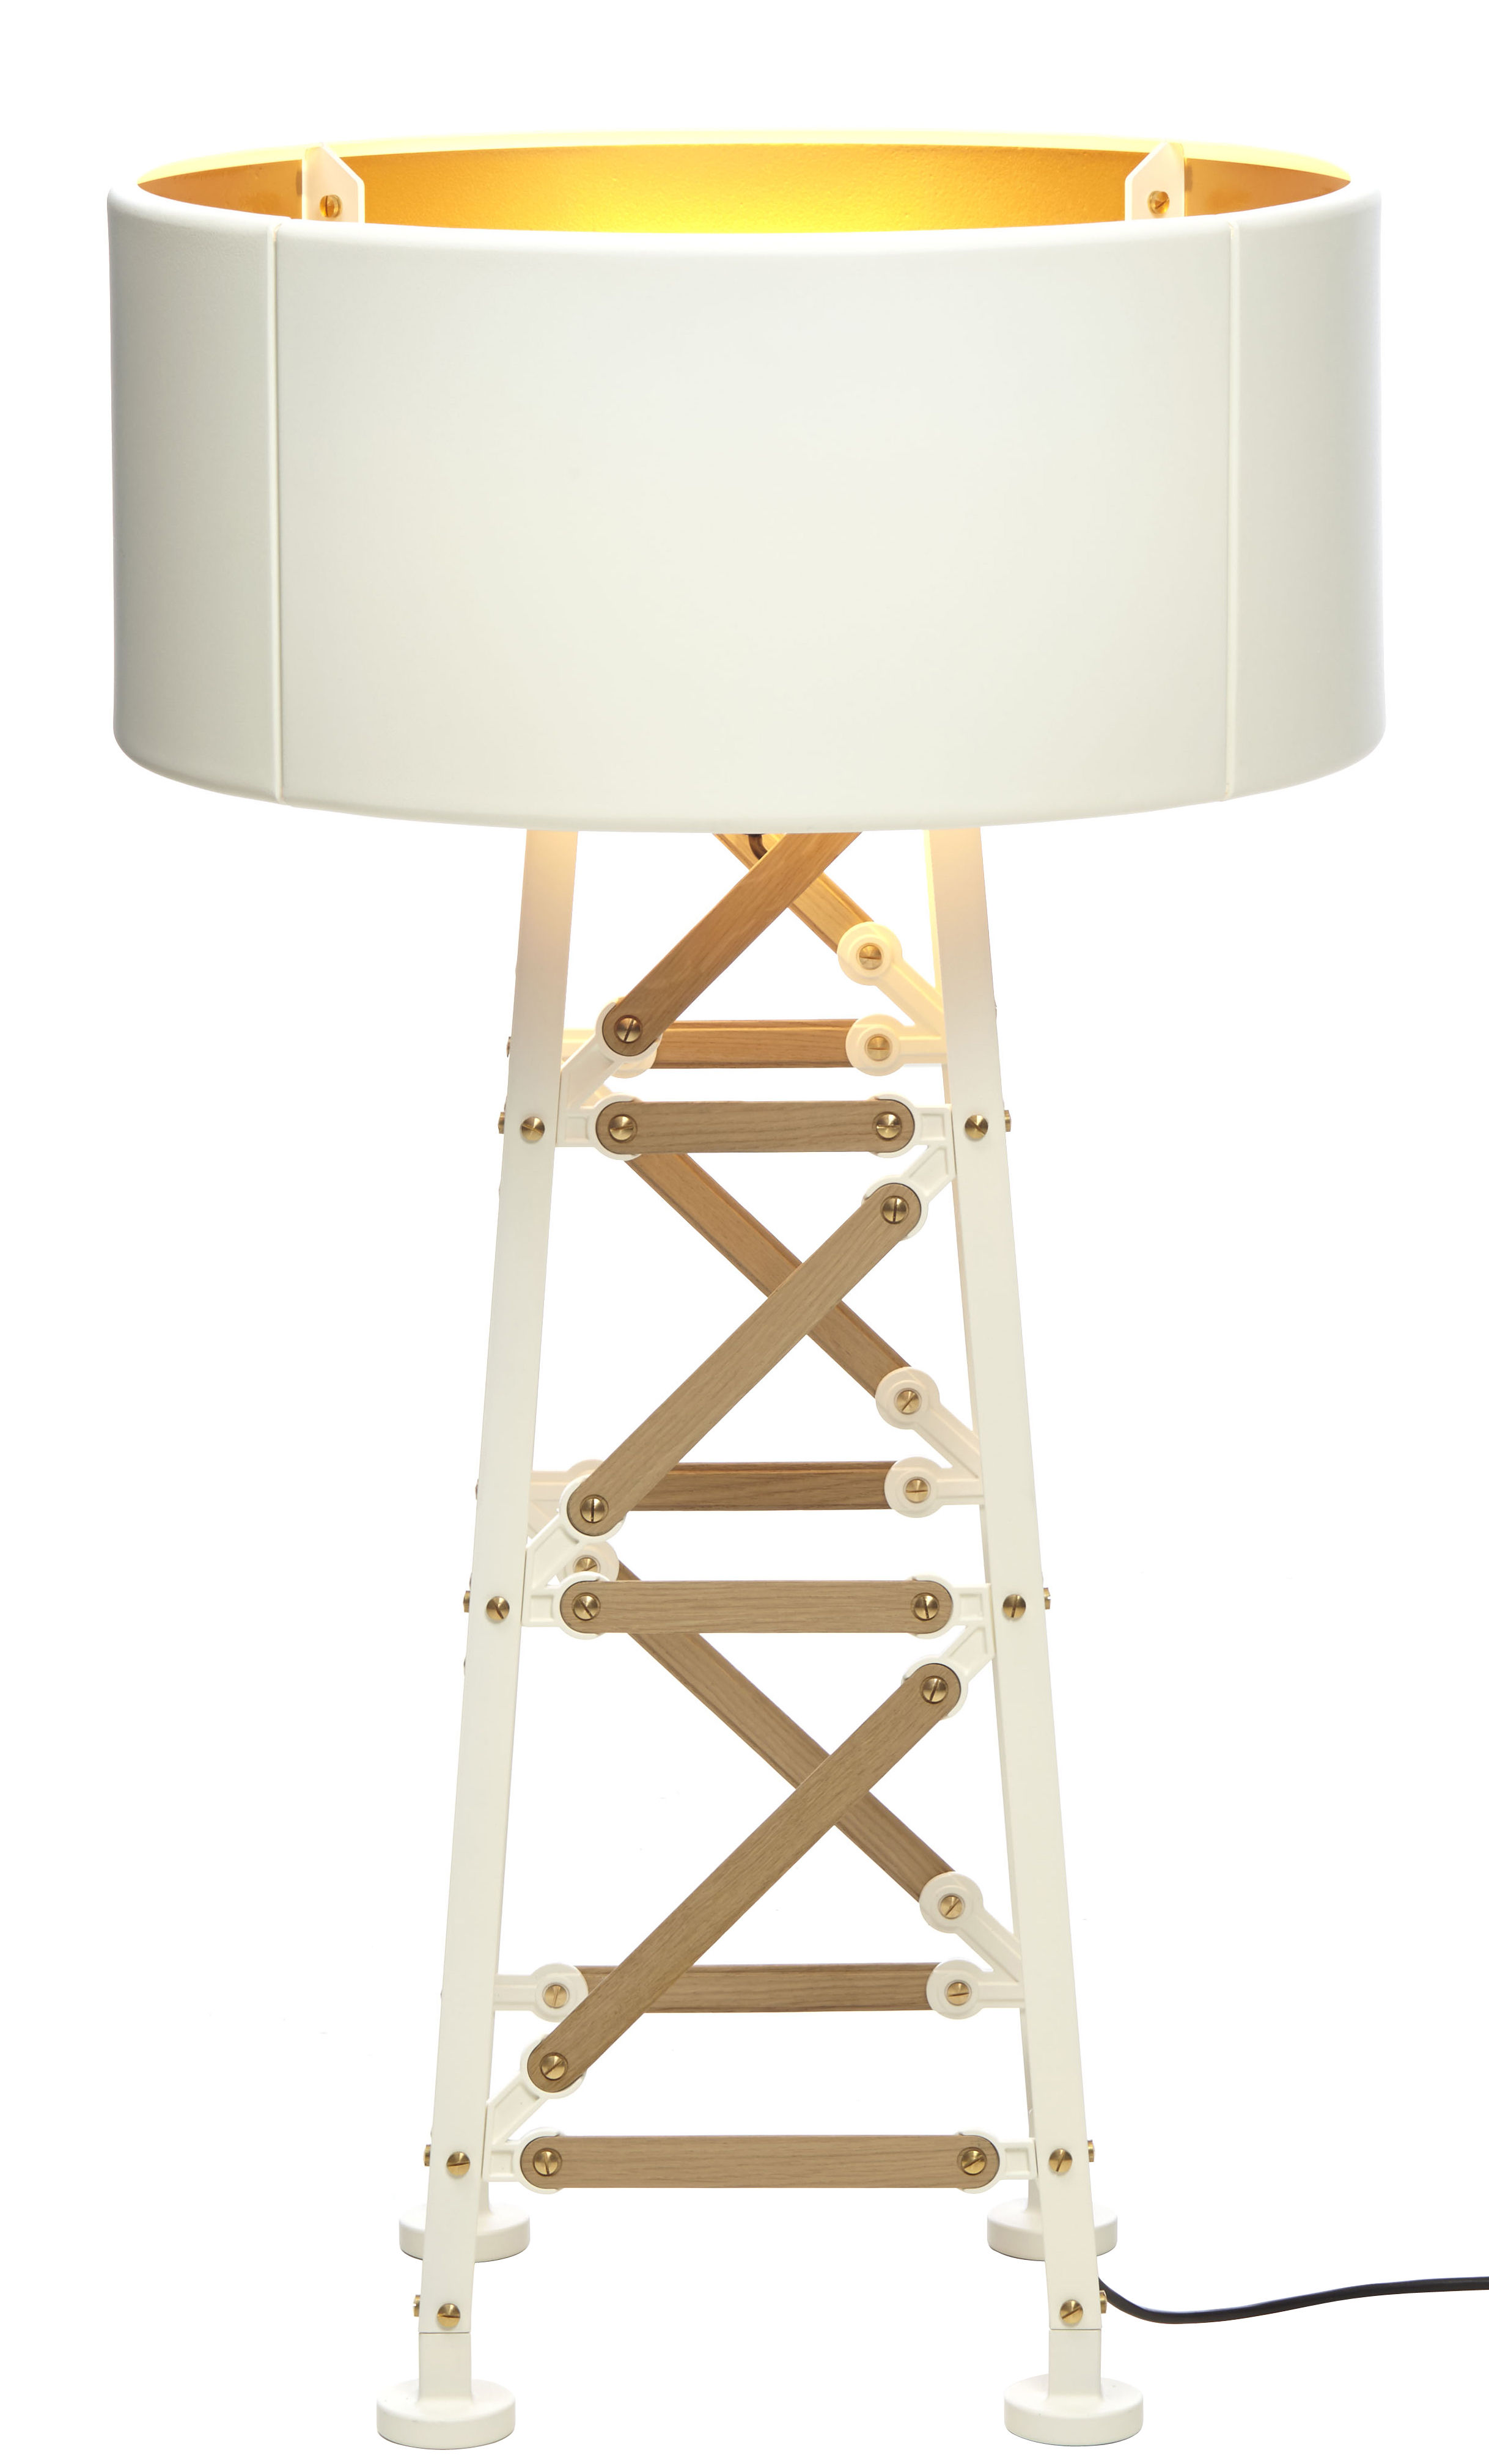 Lighting - Floor lamps - Construction Lamp Small Floor lamp by Moooi - Natural wood / white - Aluminium, Wood